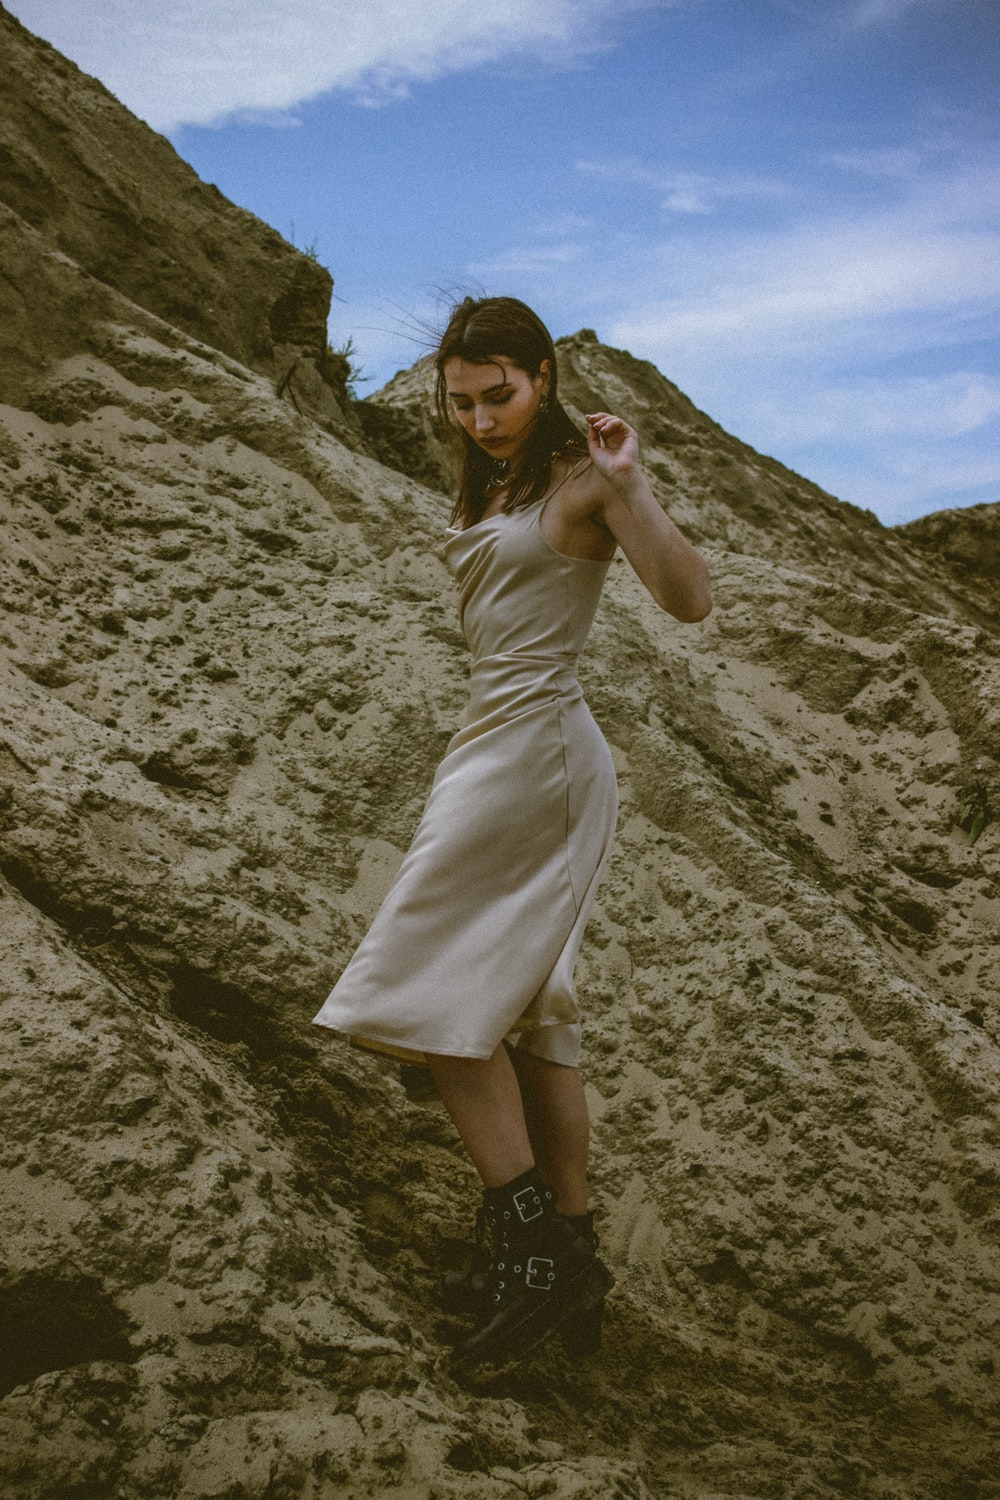 woman in white dress standing on rocky hill during daytime